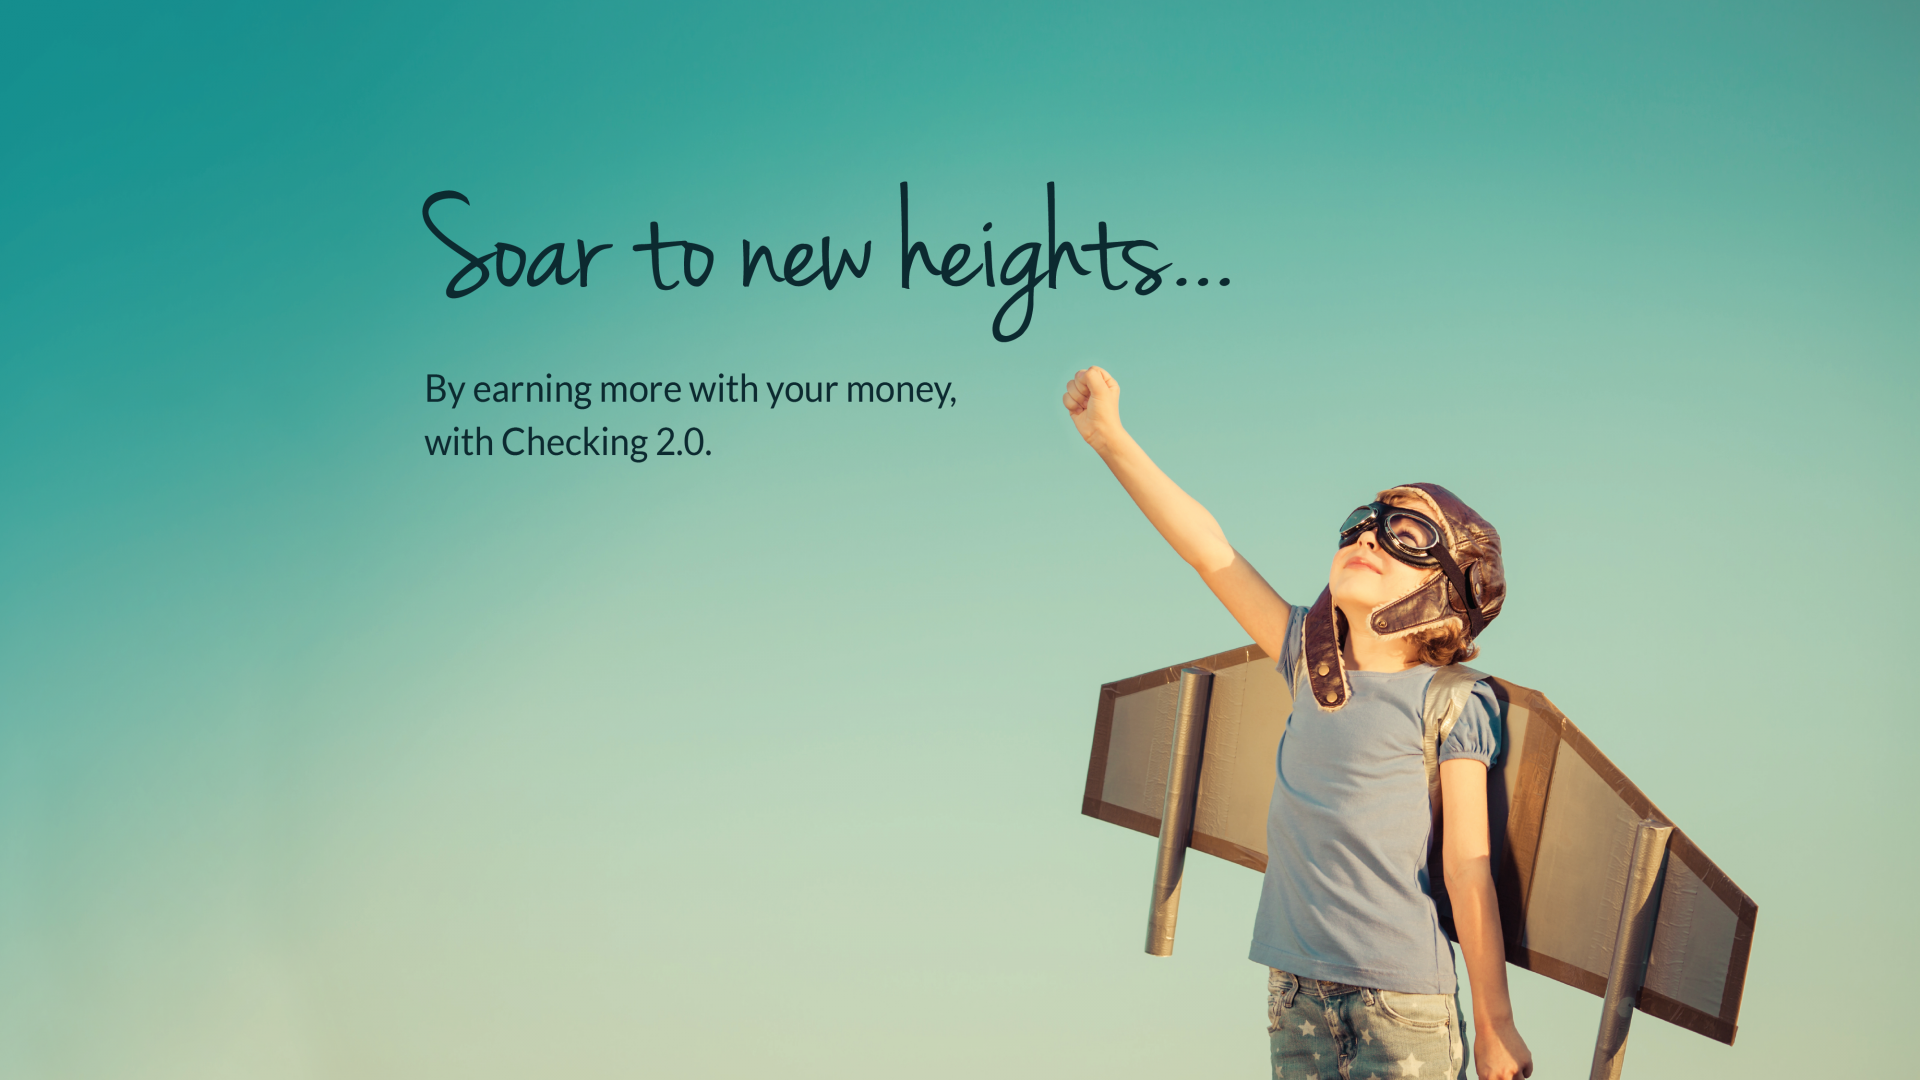 Soar to new heights with Checking 2.0. - click for more info